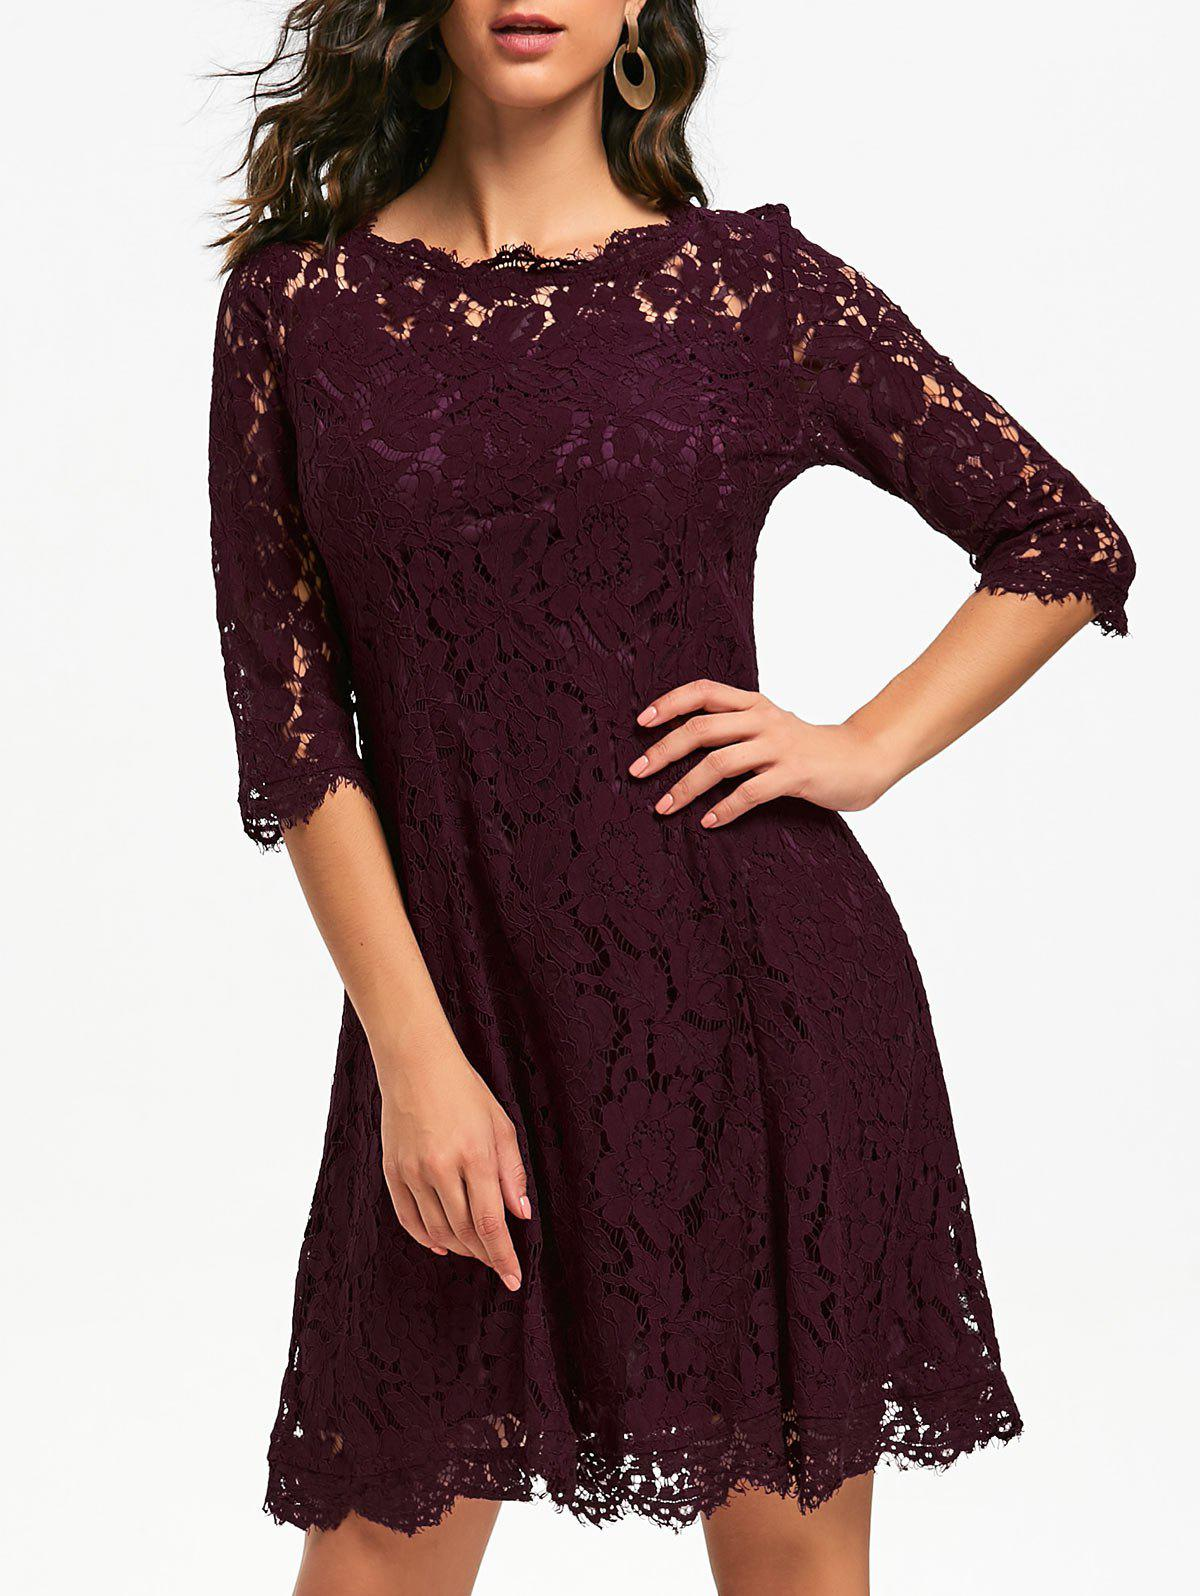 Lace Mini Evening Party DressWOMEN<br><br>Size: 2XL; Color: WINE RED; Style: Brief; Material: Polyester; Silhouette: A-Line; Dresses Length: Mini; Neckline: Round Collar; Sleeve Length: 3/4 Length Sleeves; Pattern Type: Solid; With Belt: No; Season: Fall,Spring; Weight: 0.4200kg; Package Contents: 1 x Dress; Occasion: Bridesmaid,Evening,Formal,Party,Semi Formal;